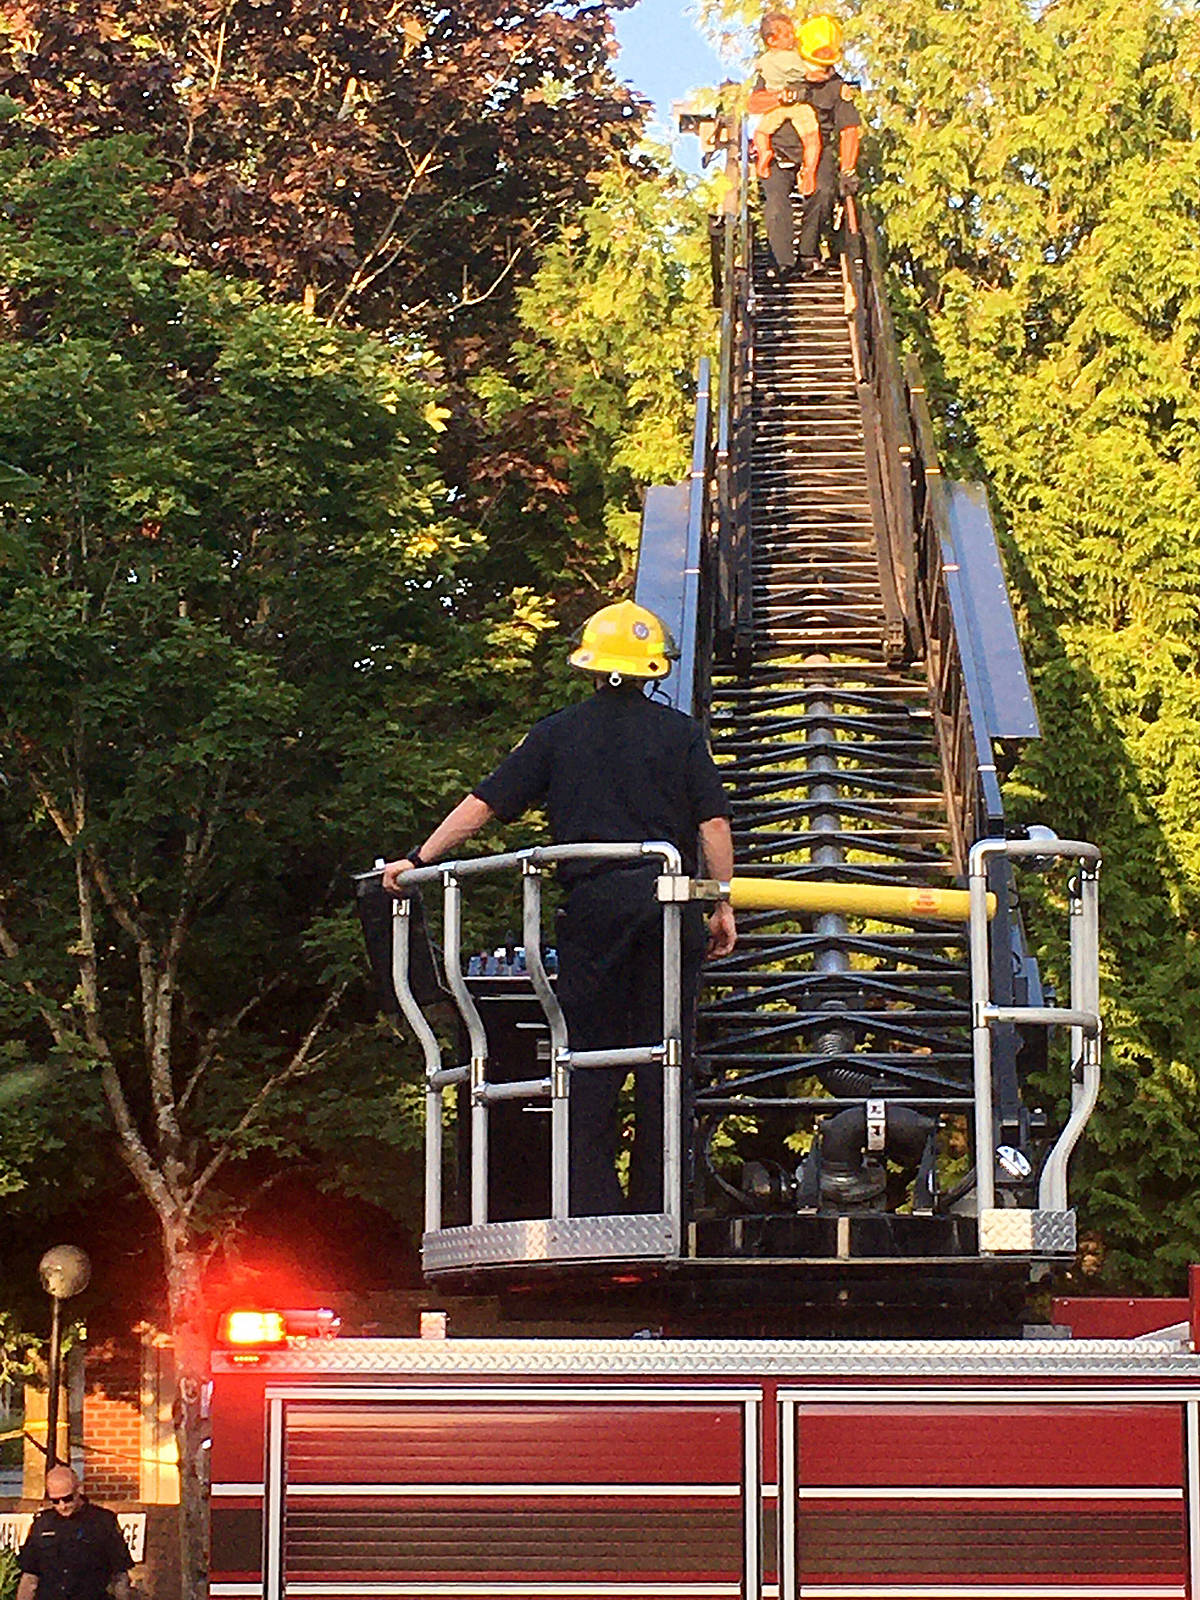 Firefighters used a ladder truck to rescue a three-year-old boy from a large tree in the Murrayville neighbourhood of Langley Thursday evening. (Dwayne Weidendorf/Black Press Media)